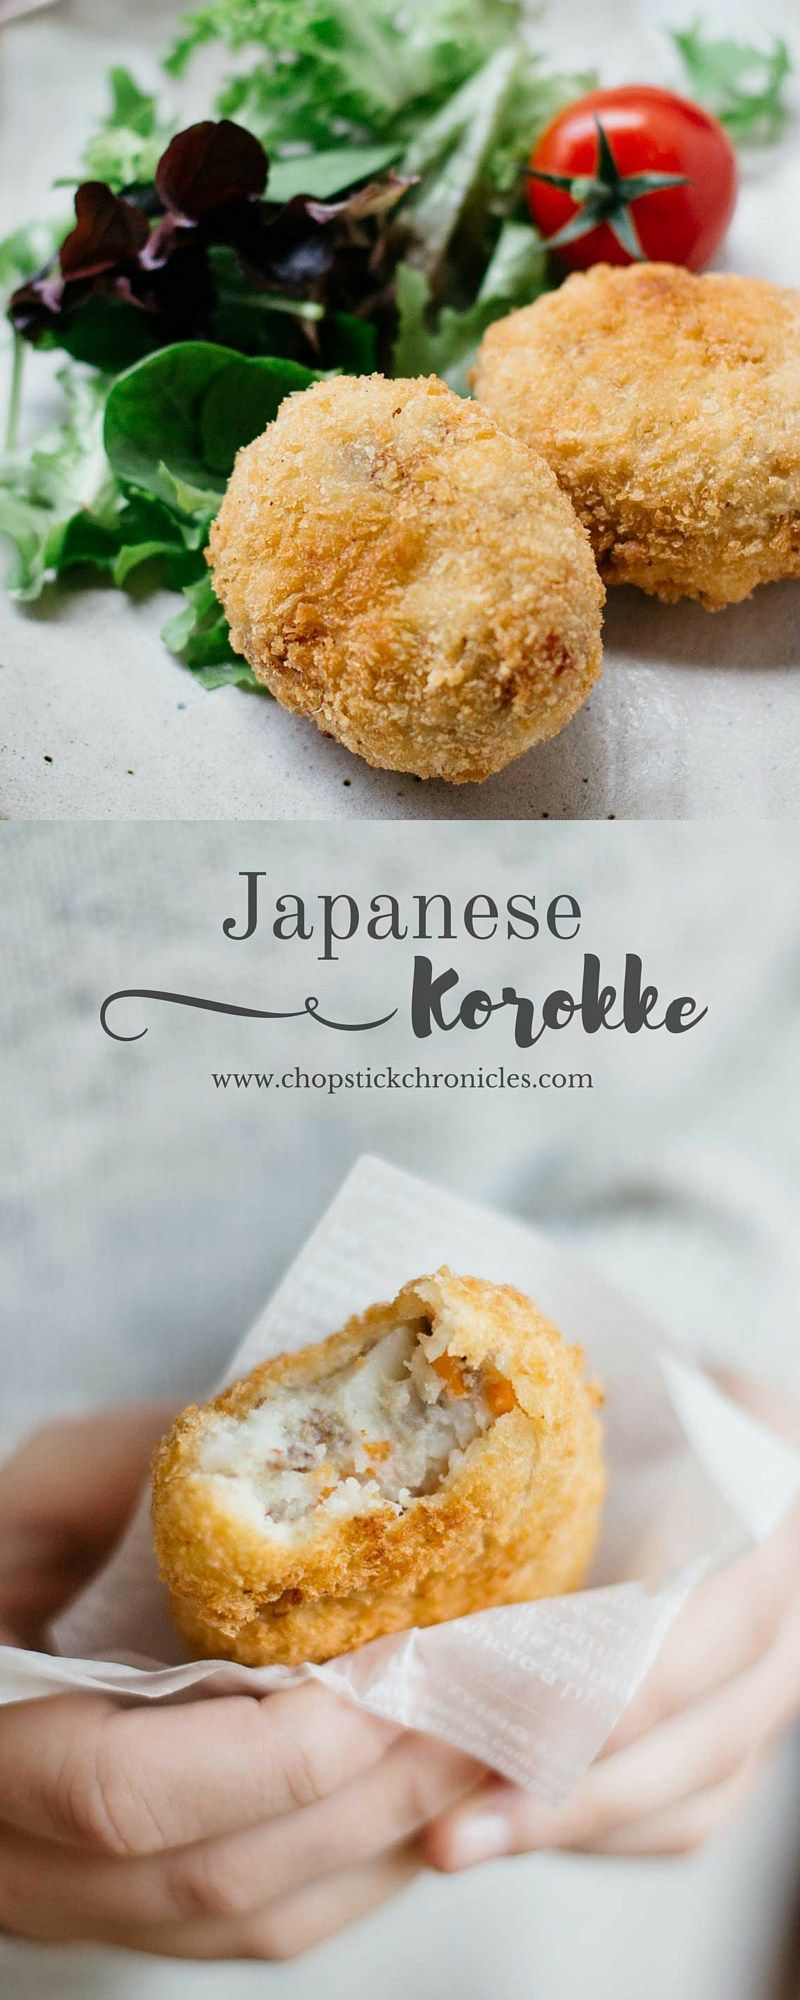 Japanese korokke blogger recipes we love pinterest japanese japan forumfinder Choice Image